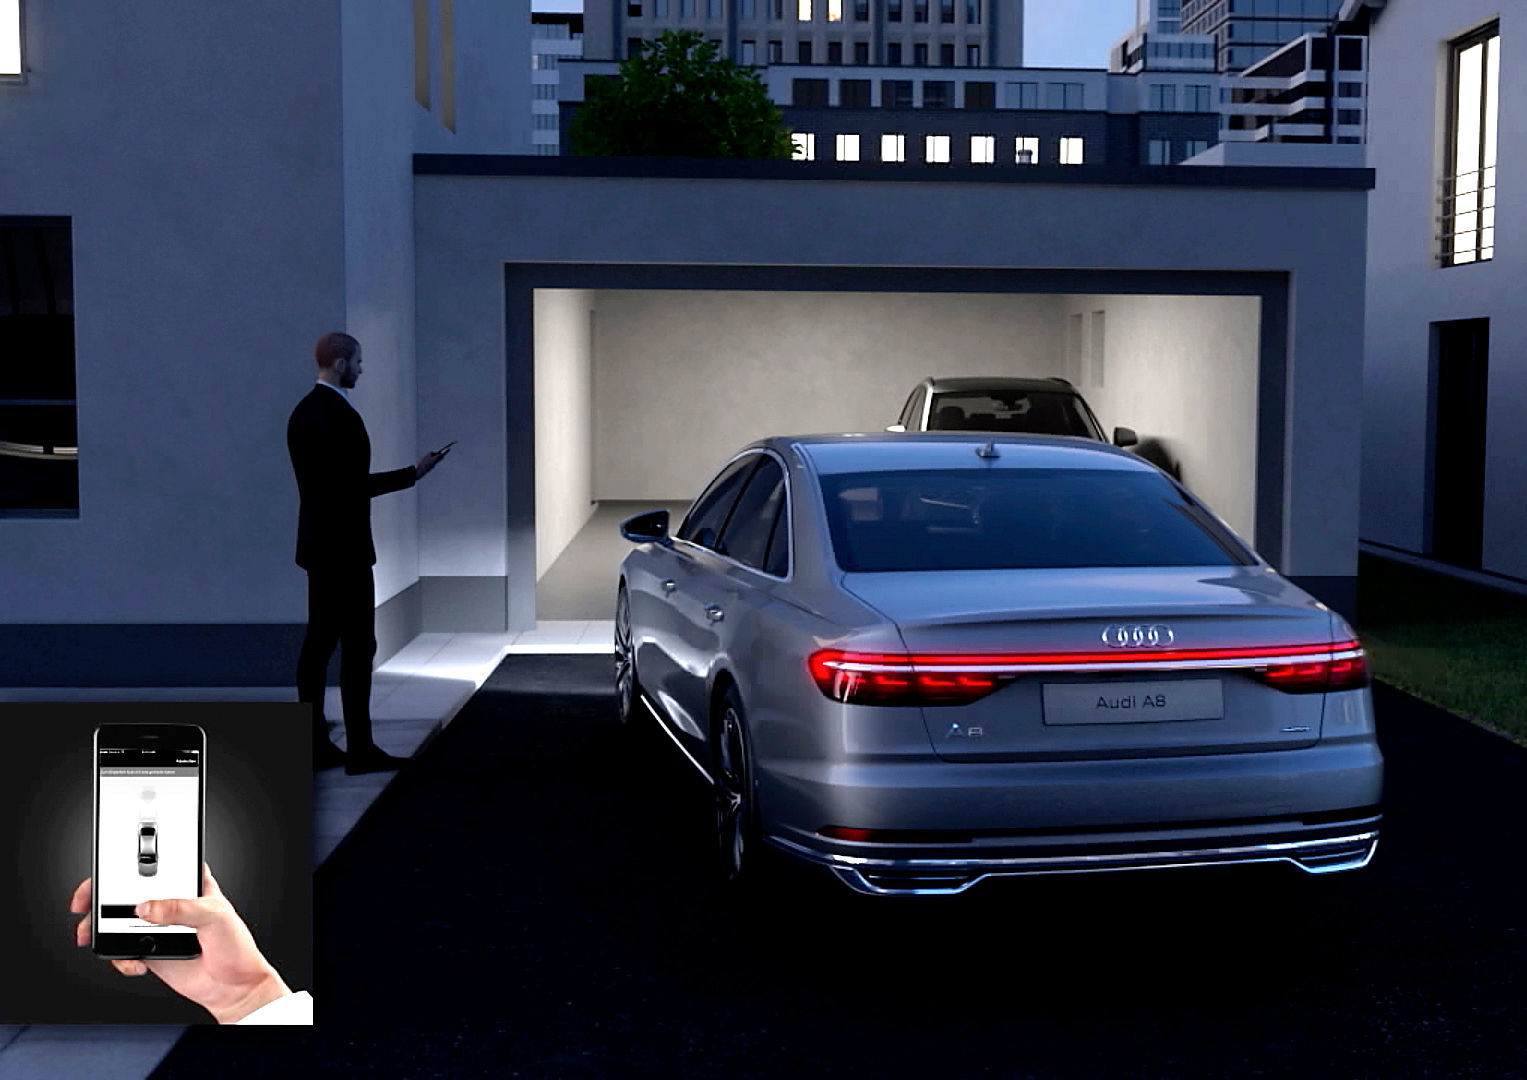 Garage Audi Tours Driver Assistance Systems Audi Mediacenter